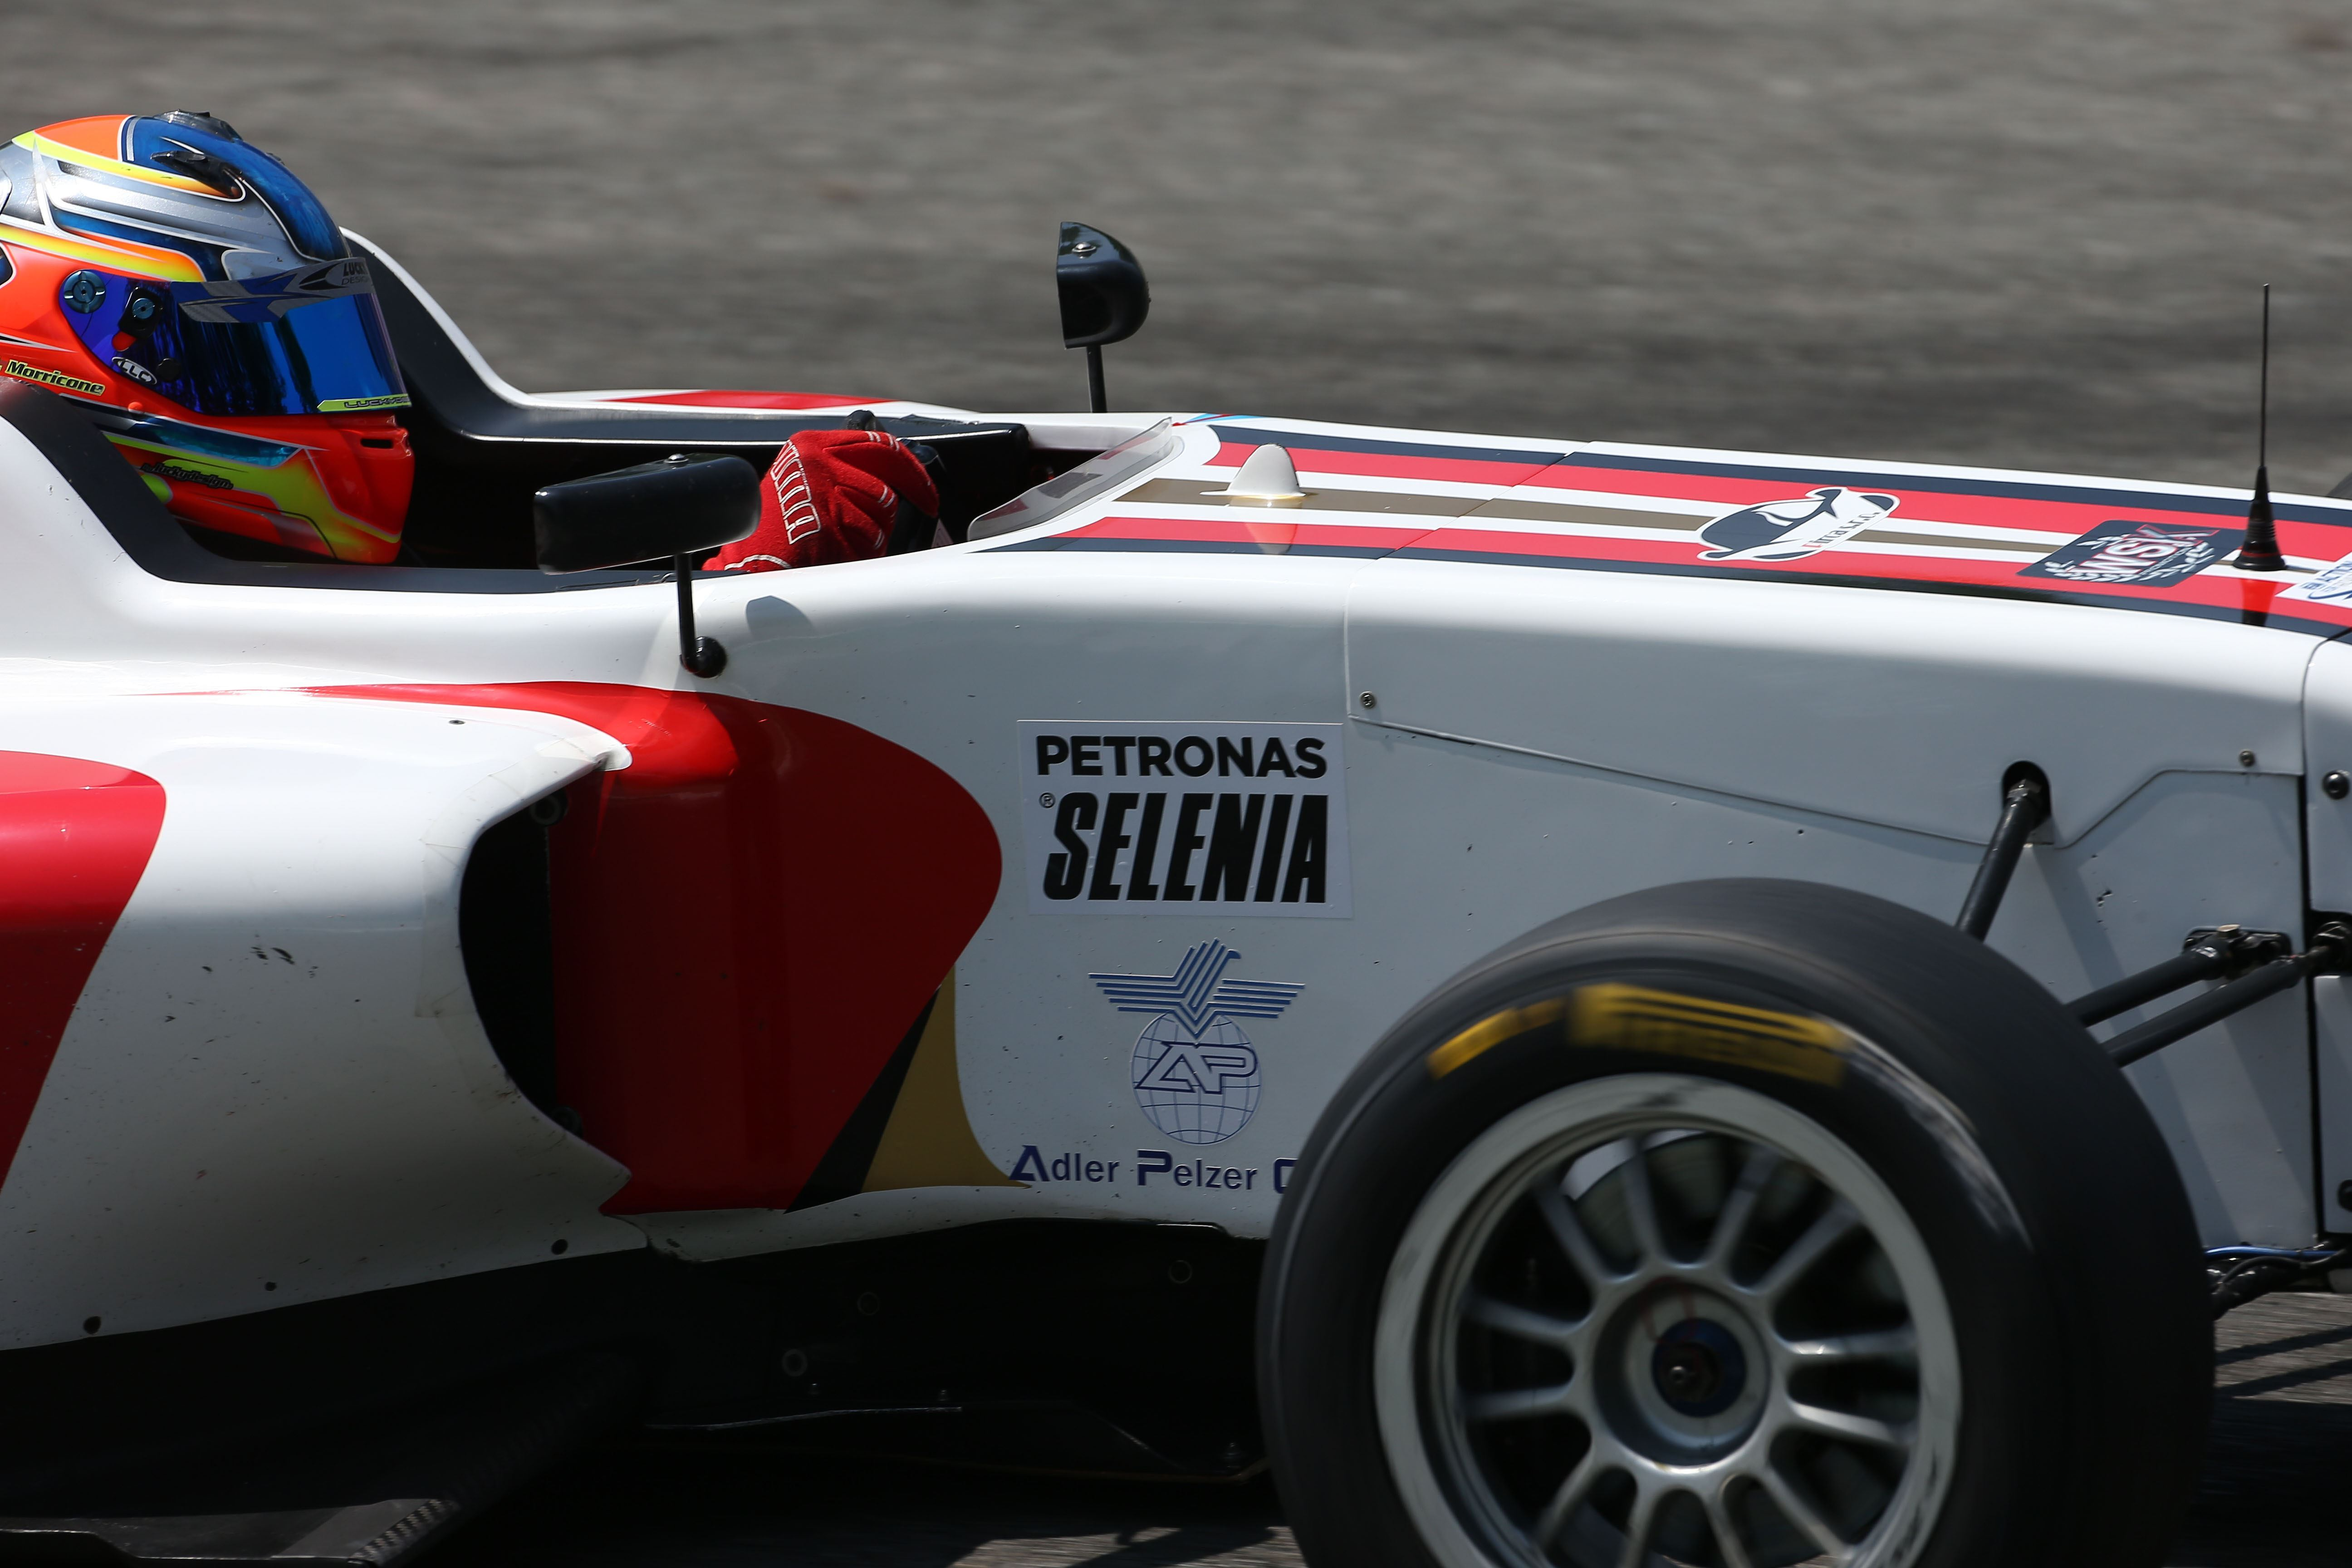 Morricone grabs rookie podium in Monza F4 races